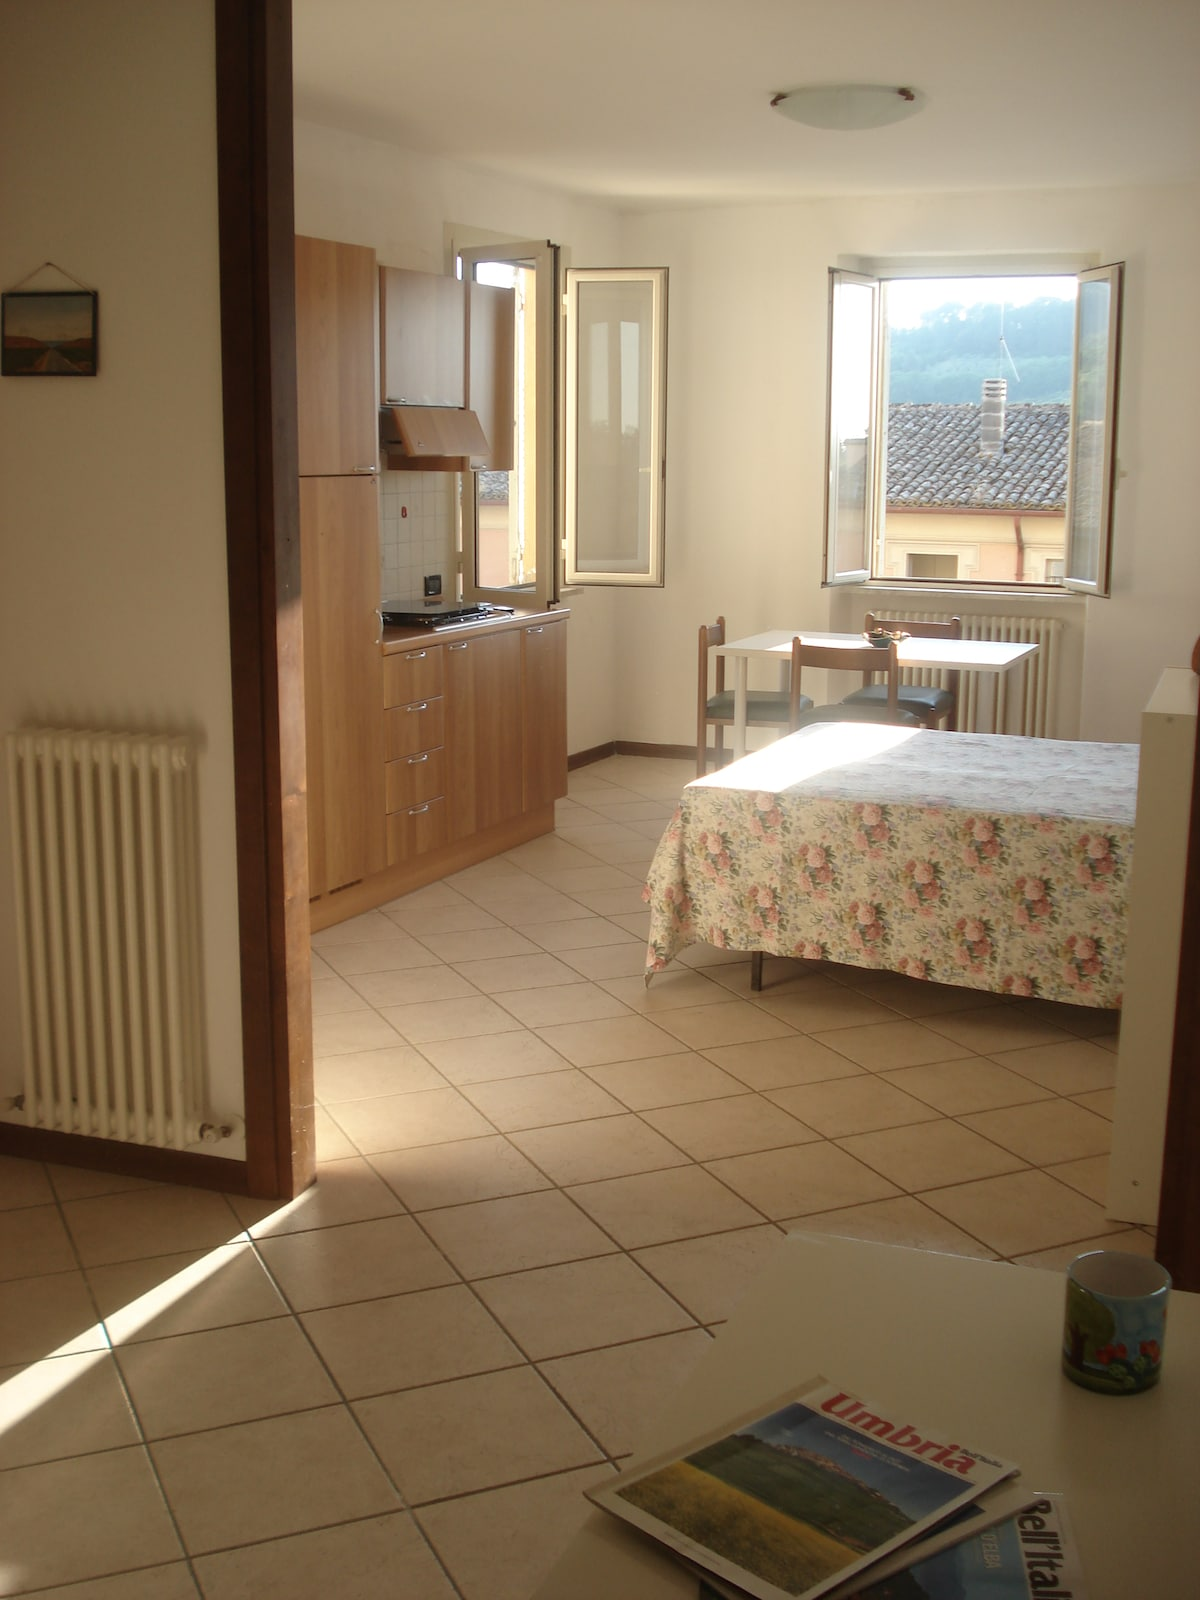 Holiday house Le Rondini monolocale